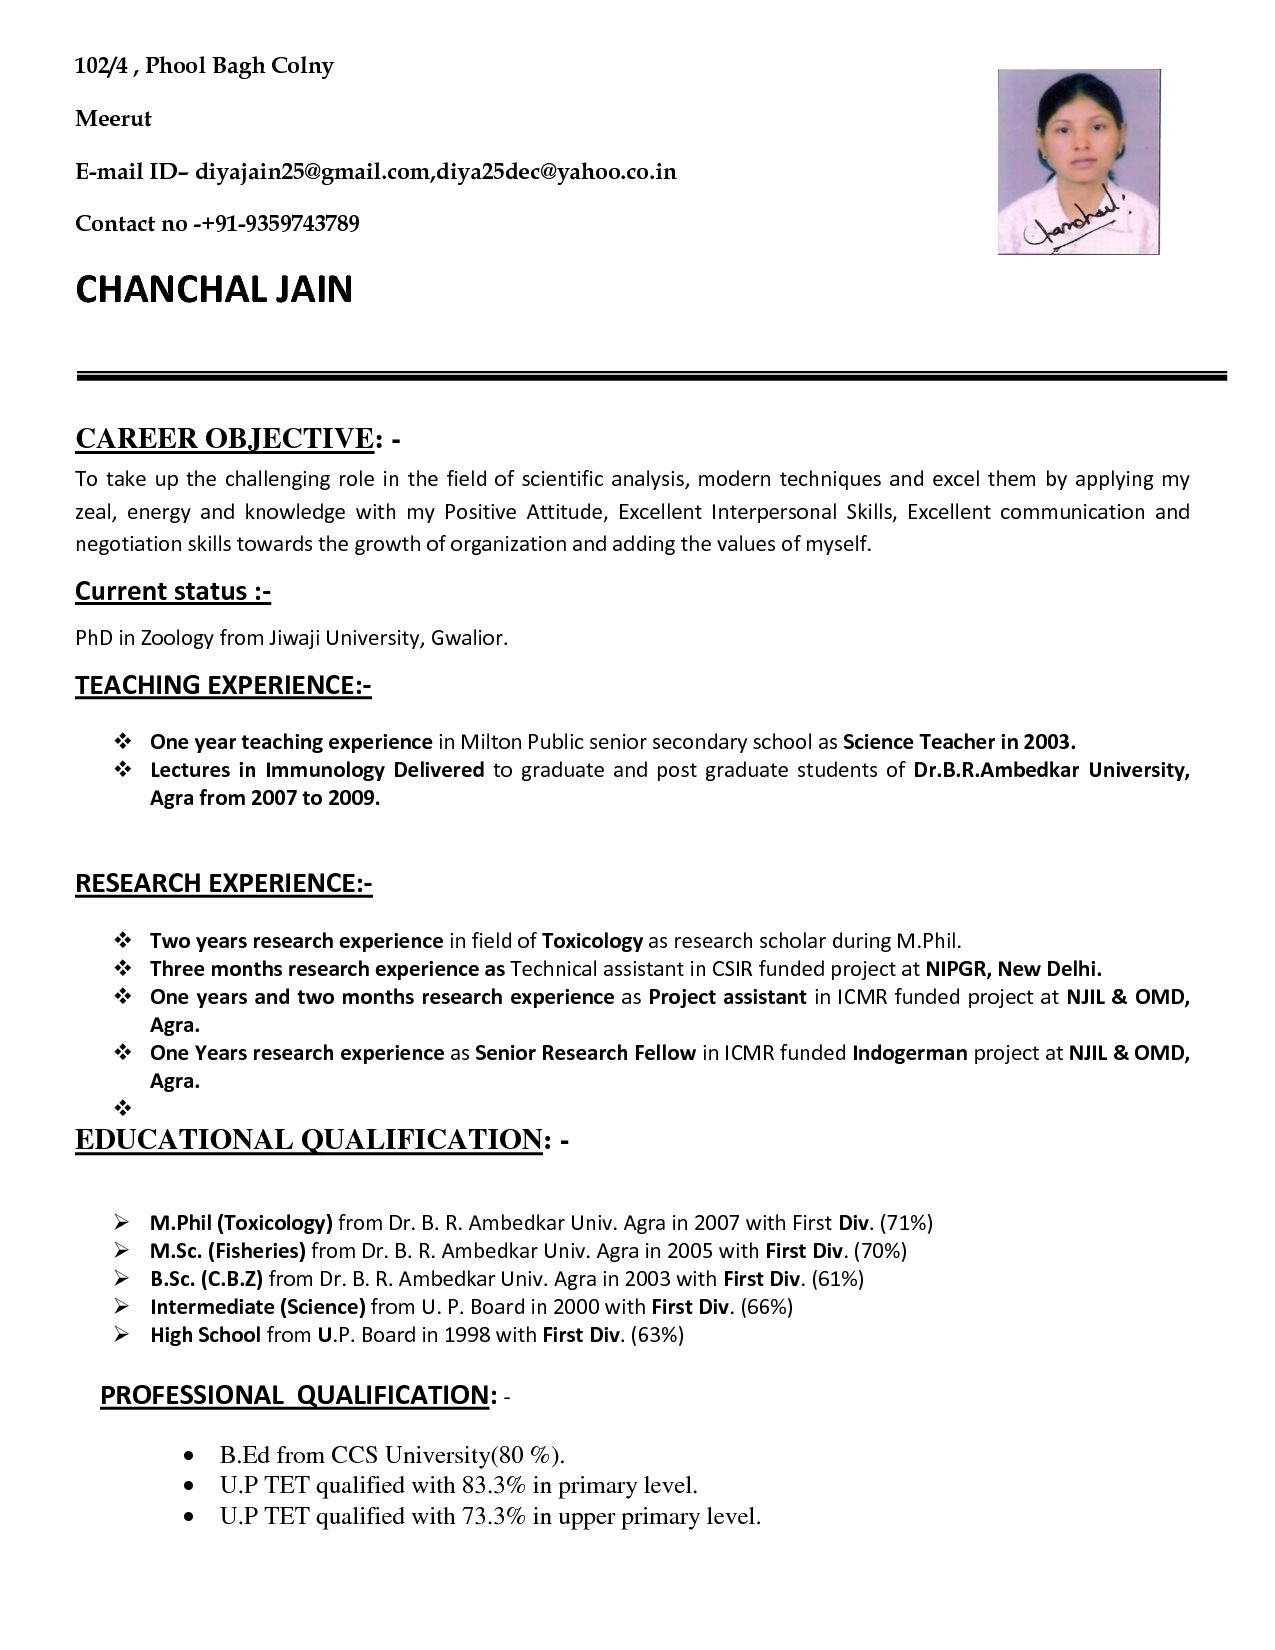 biodata sample for job